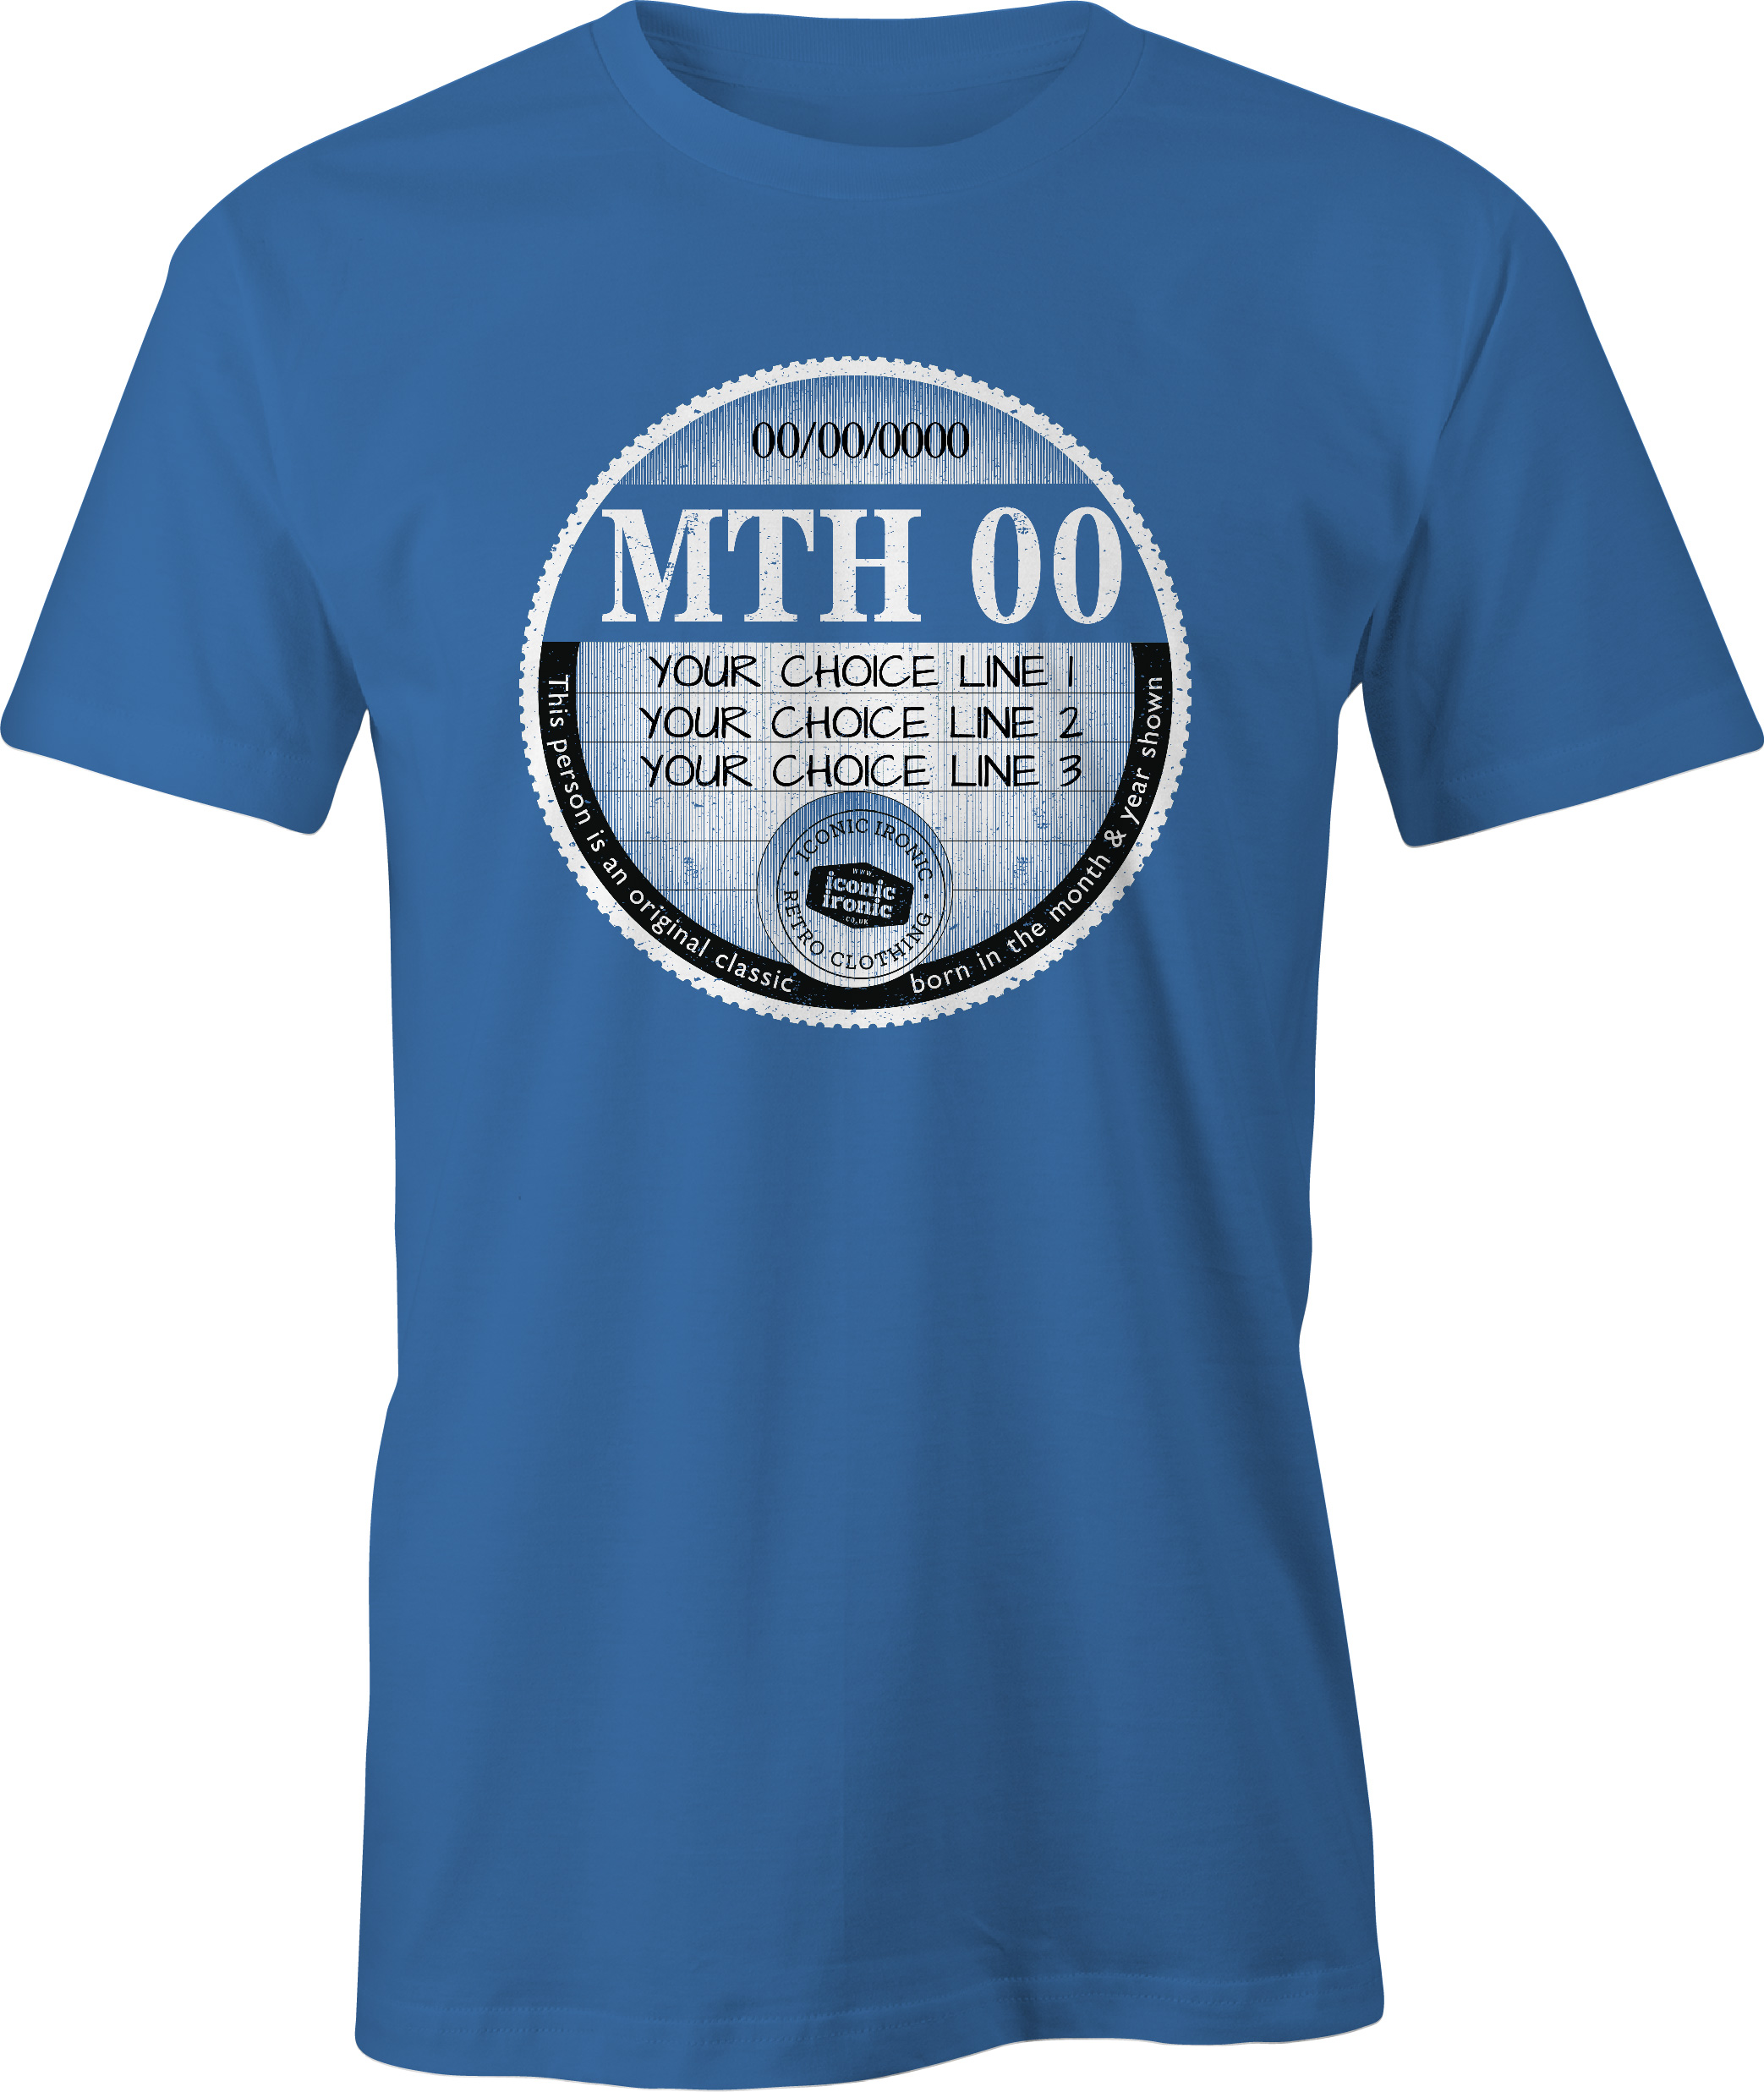 Blue car tax t-shirt with large graphic